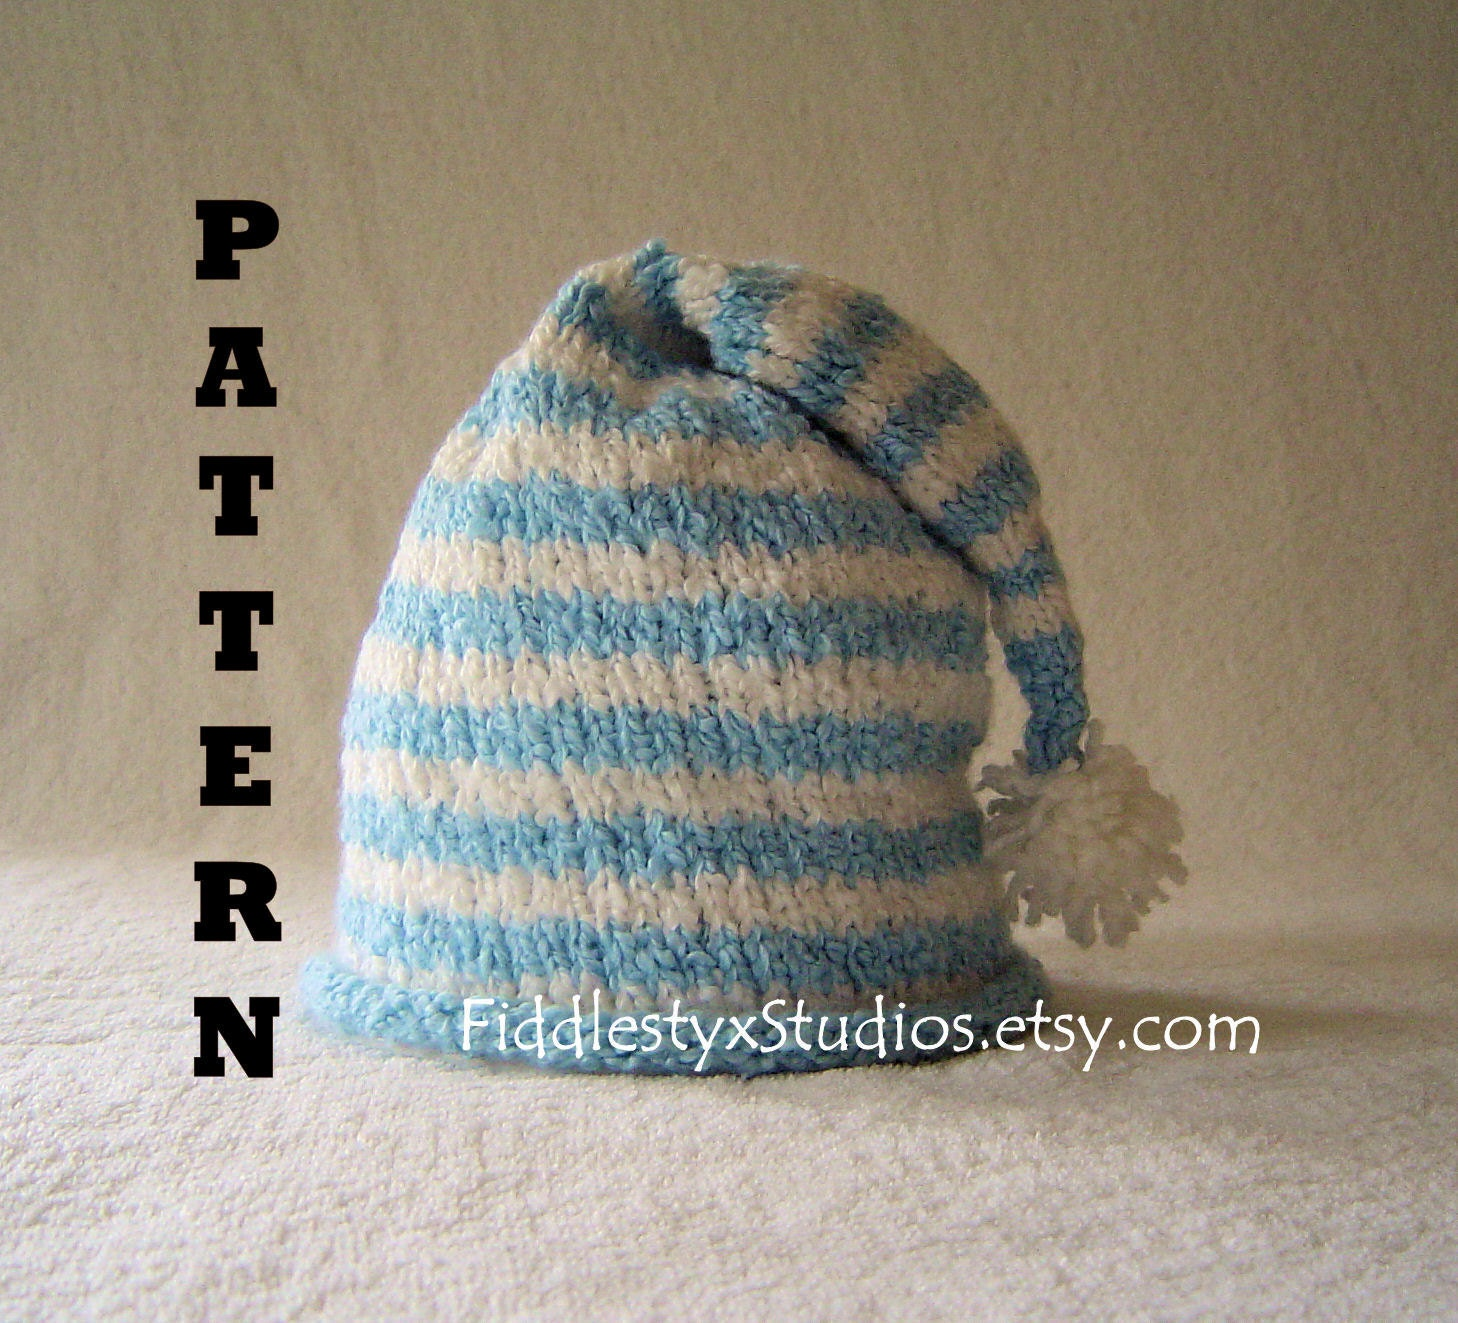 Knitted stocking cap pattern patterns gallery stocking cap free knitting pattern sz s m l bankloansurffo Choice Image